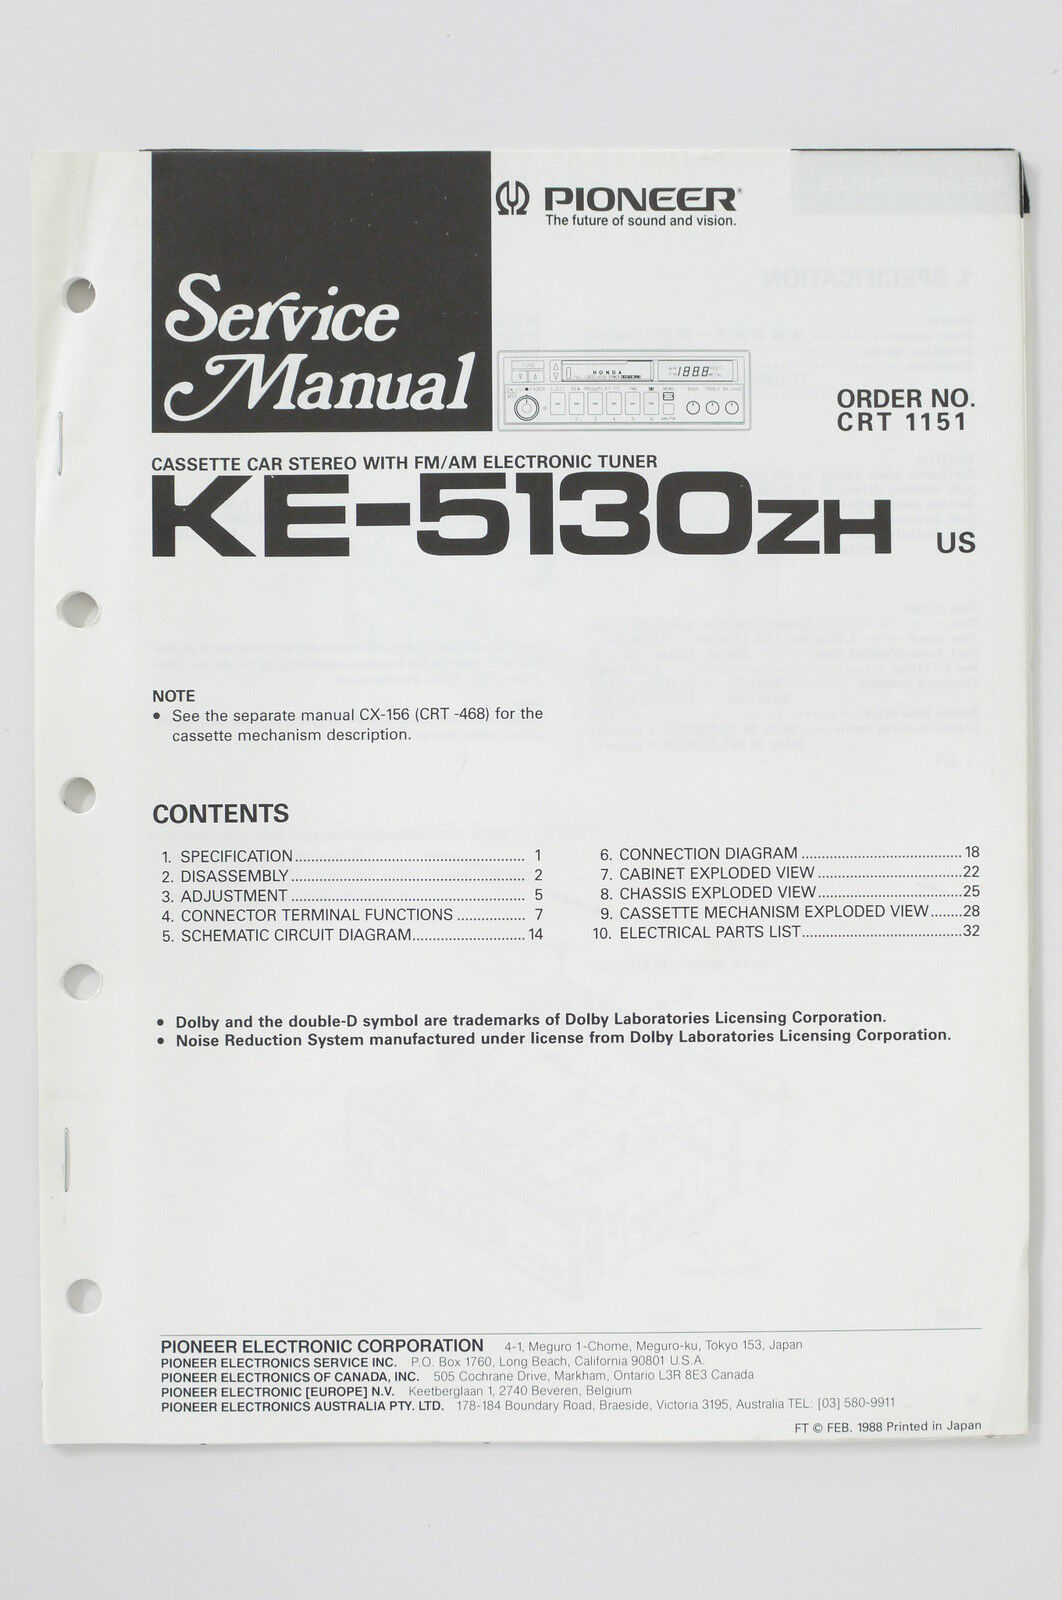 Manuals resources prices on daasy page 9 pioneer ke 5130 zh original service manualguide wiring diagram o70 cheapraybanclubmaster Images